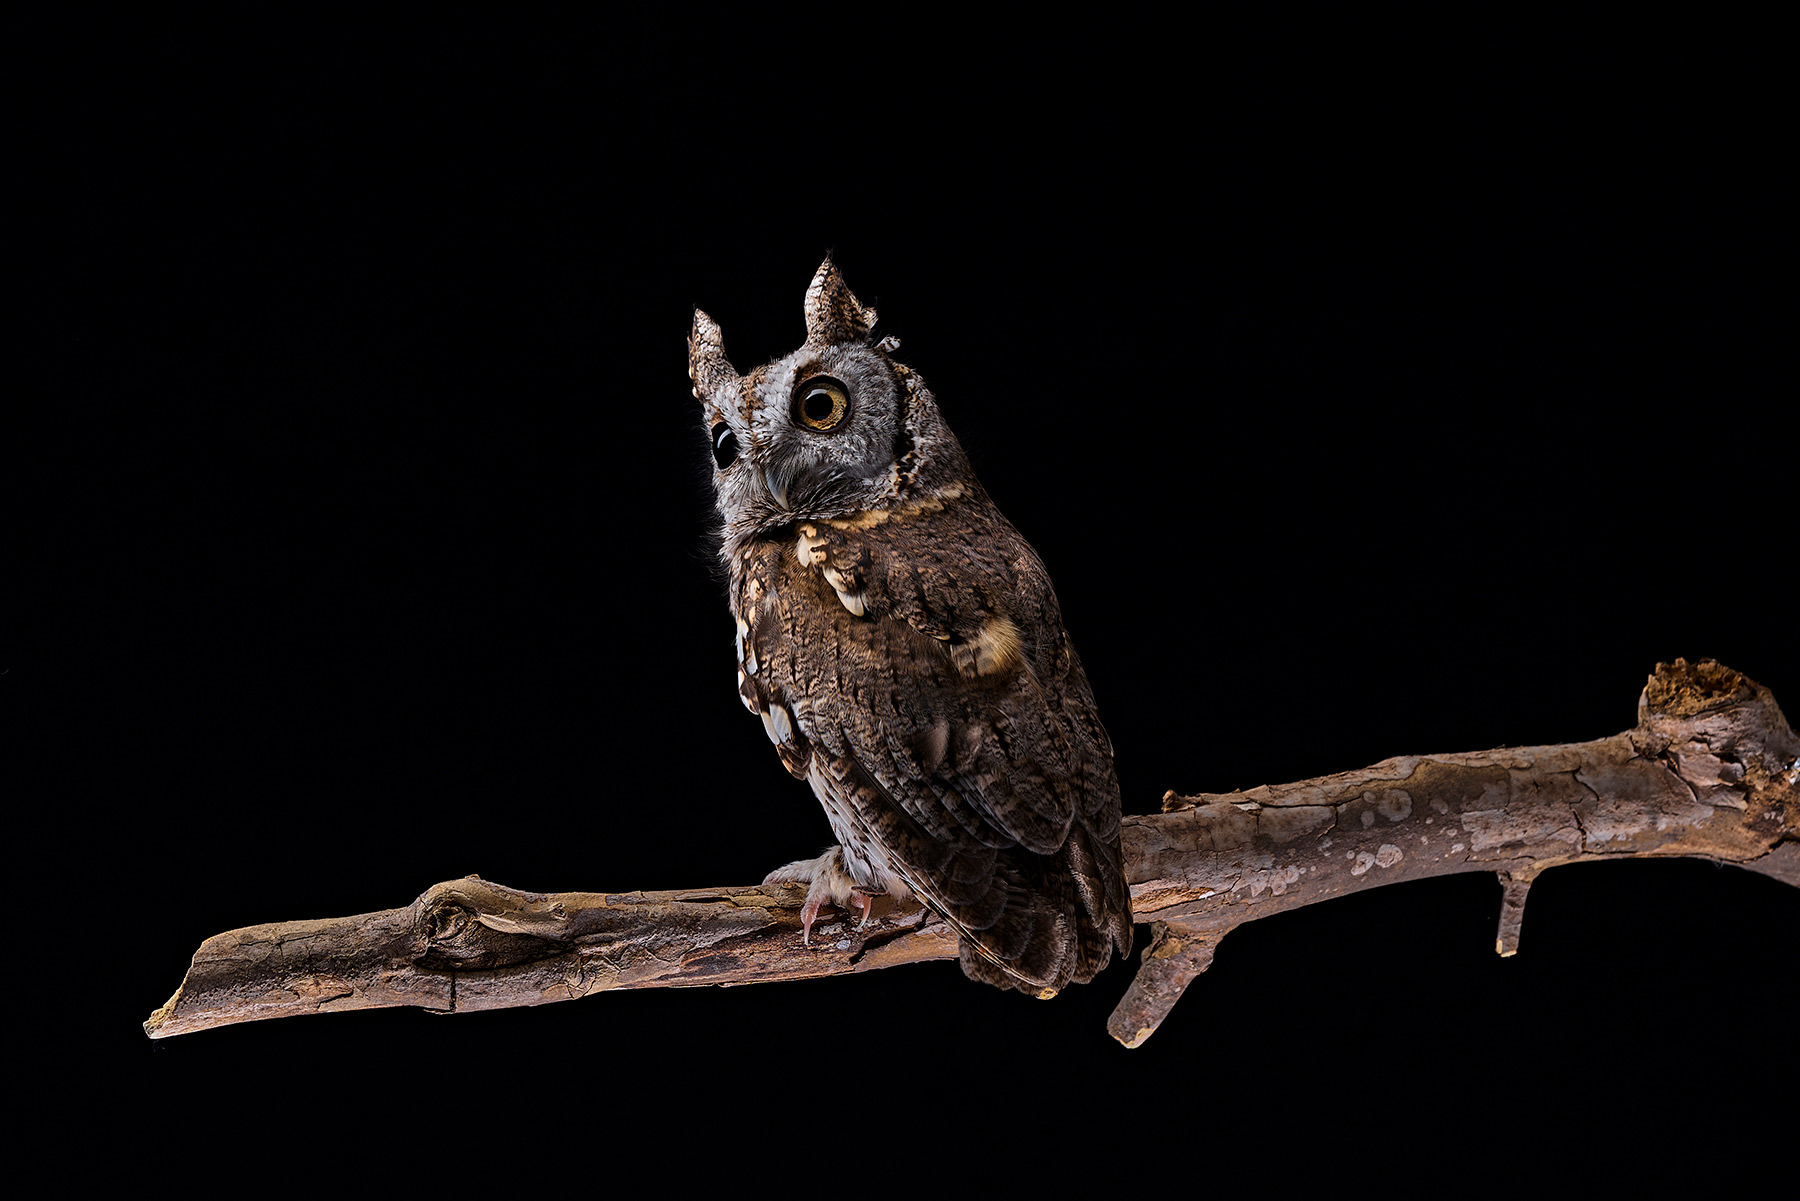 A-studio-portrait-of-a-gray-screech-owl-against-a-black-background